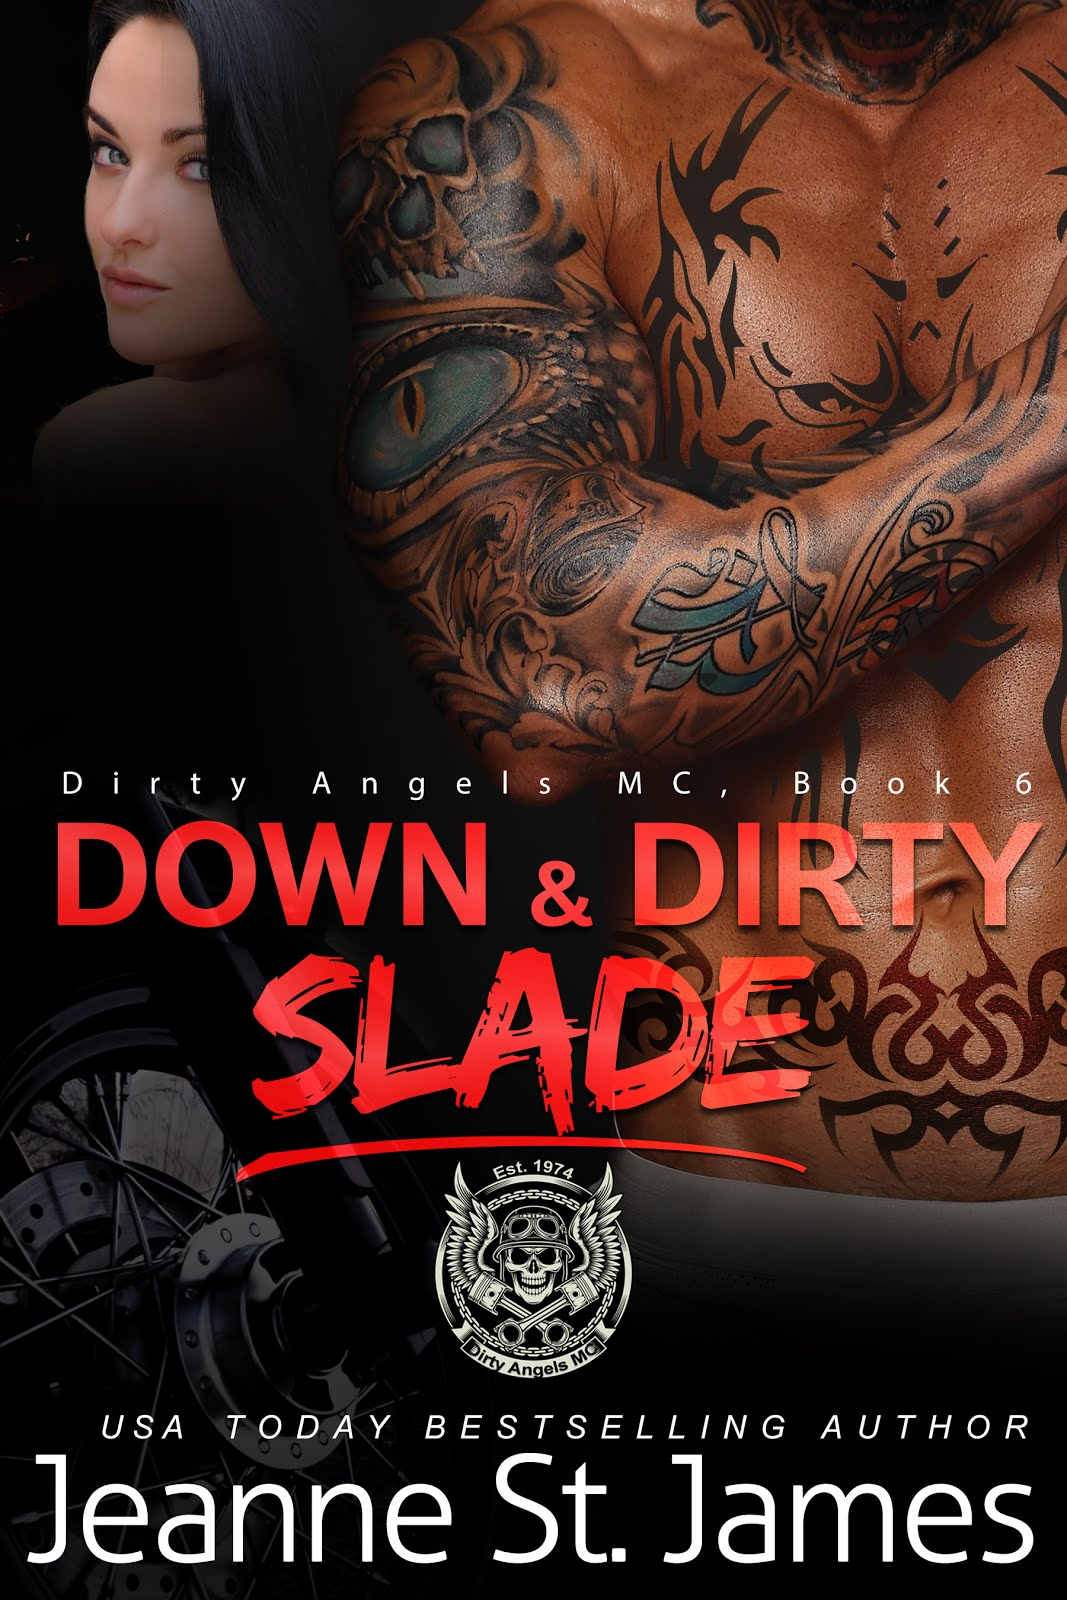 Down & Dirty: Slade